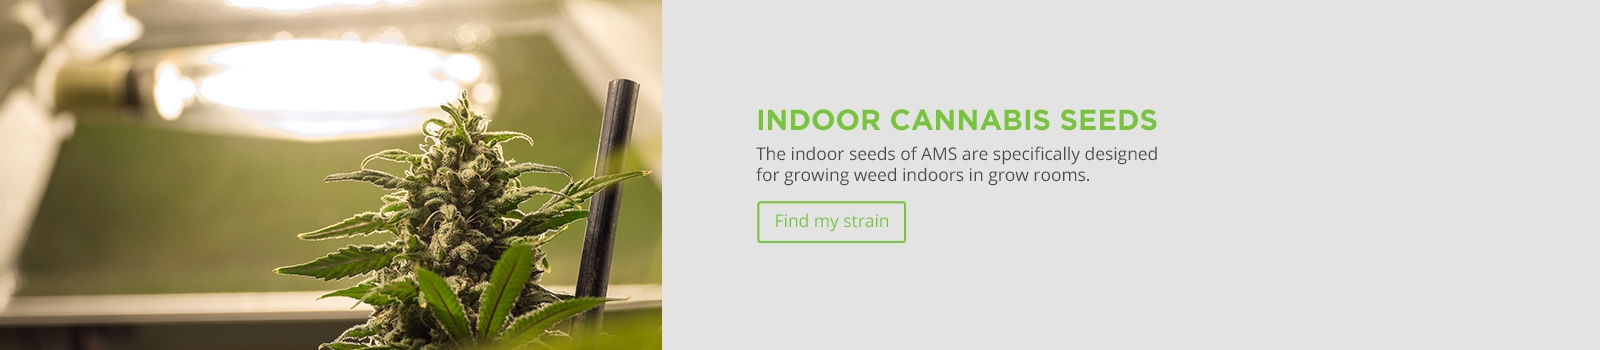 Indoor Cannabis Seeds